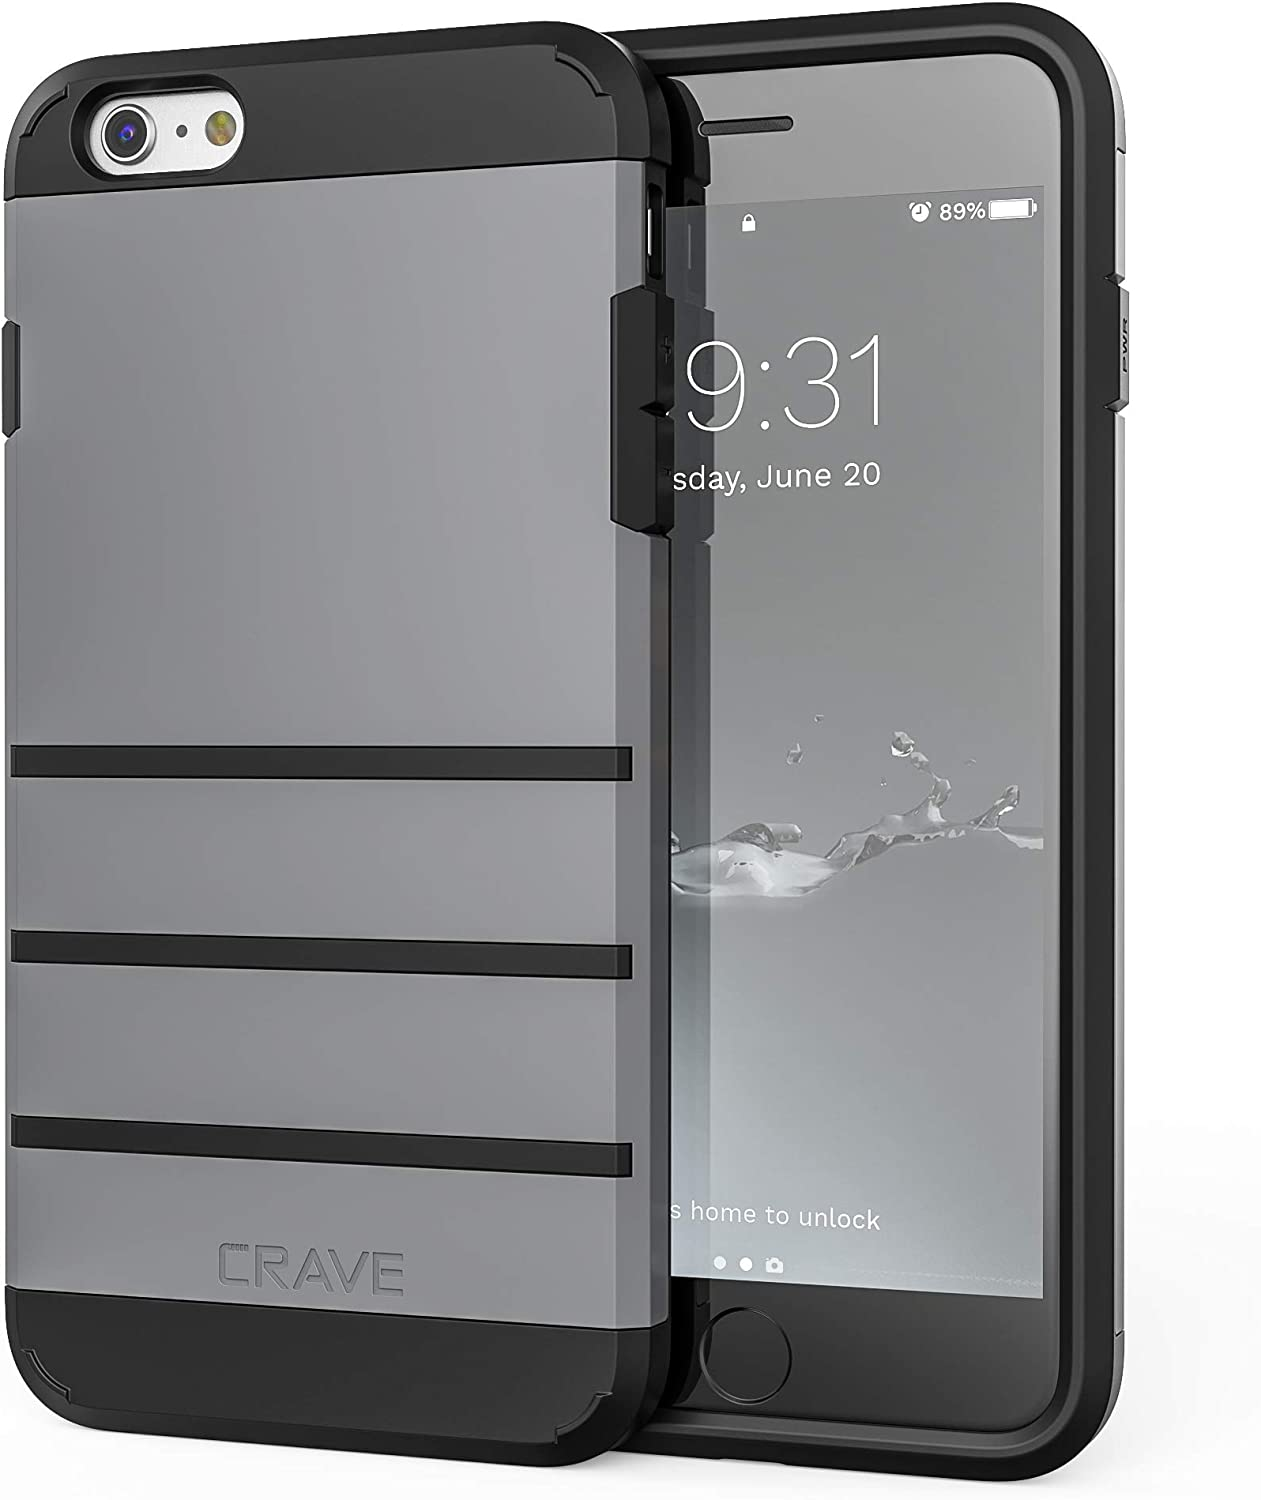 iPhone 6S Plus Case, iPhone 6 Plus Case, Crave Strong Guard Protection Series Case for iPhone 6 / 6s Plus (5.5 Inch) - Slate